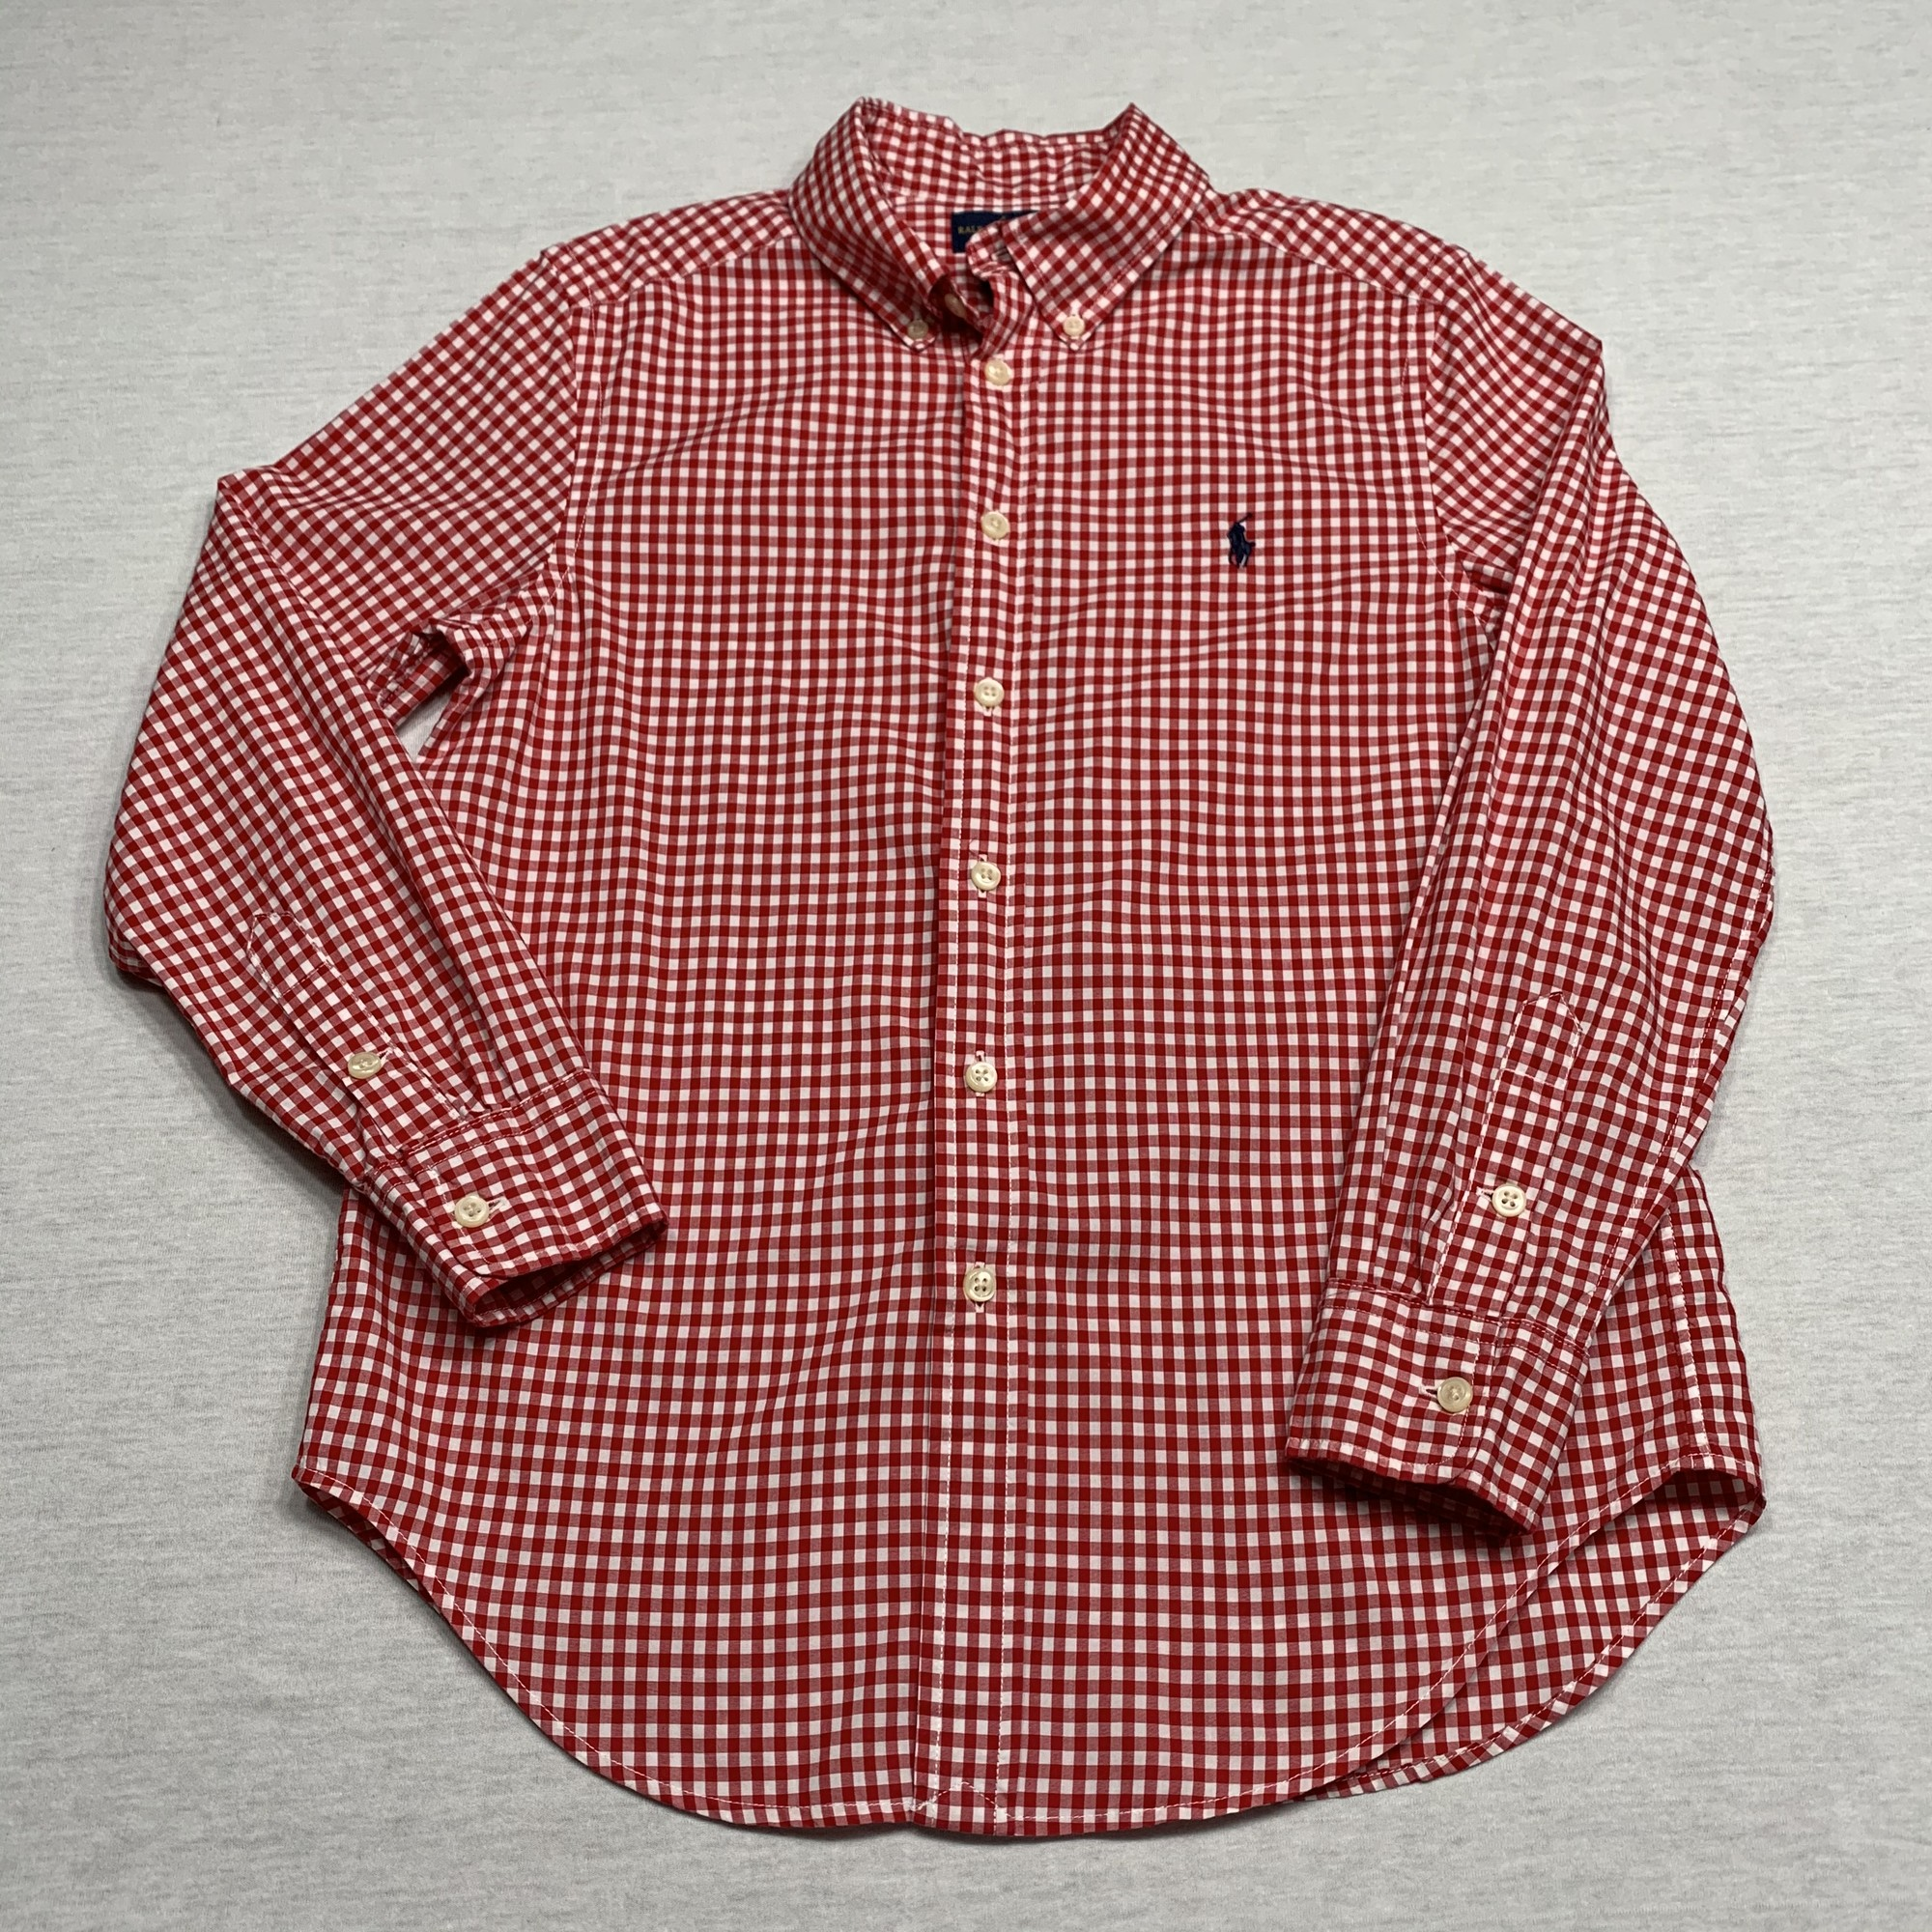 Checked poplin shirt with button down collar